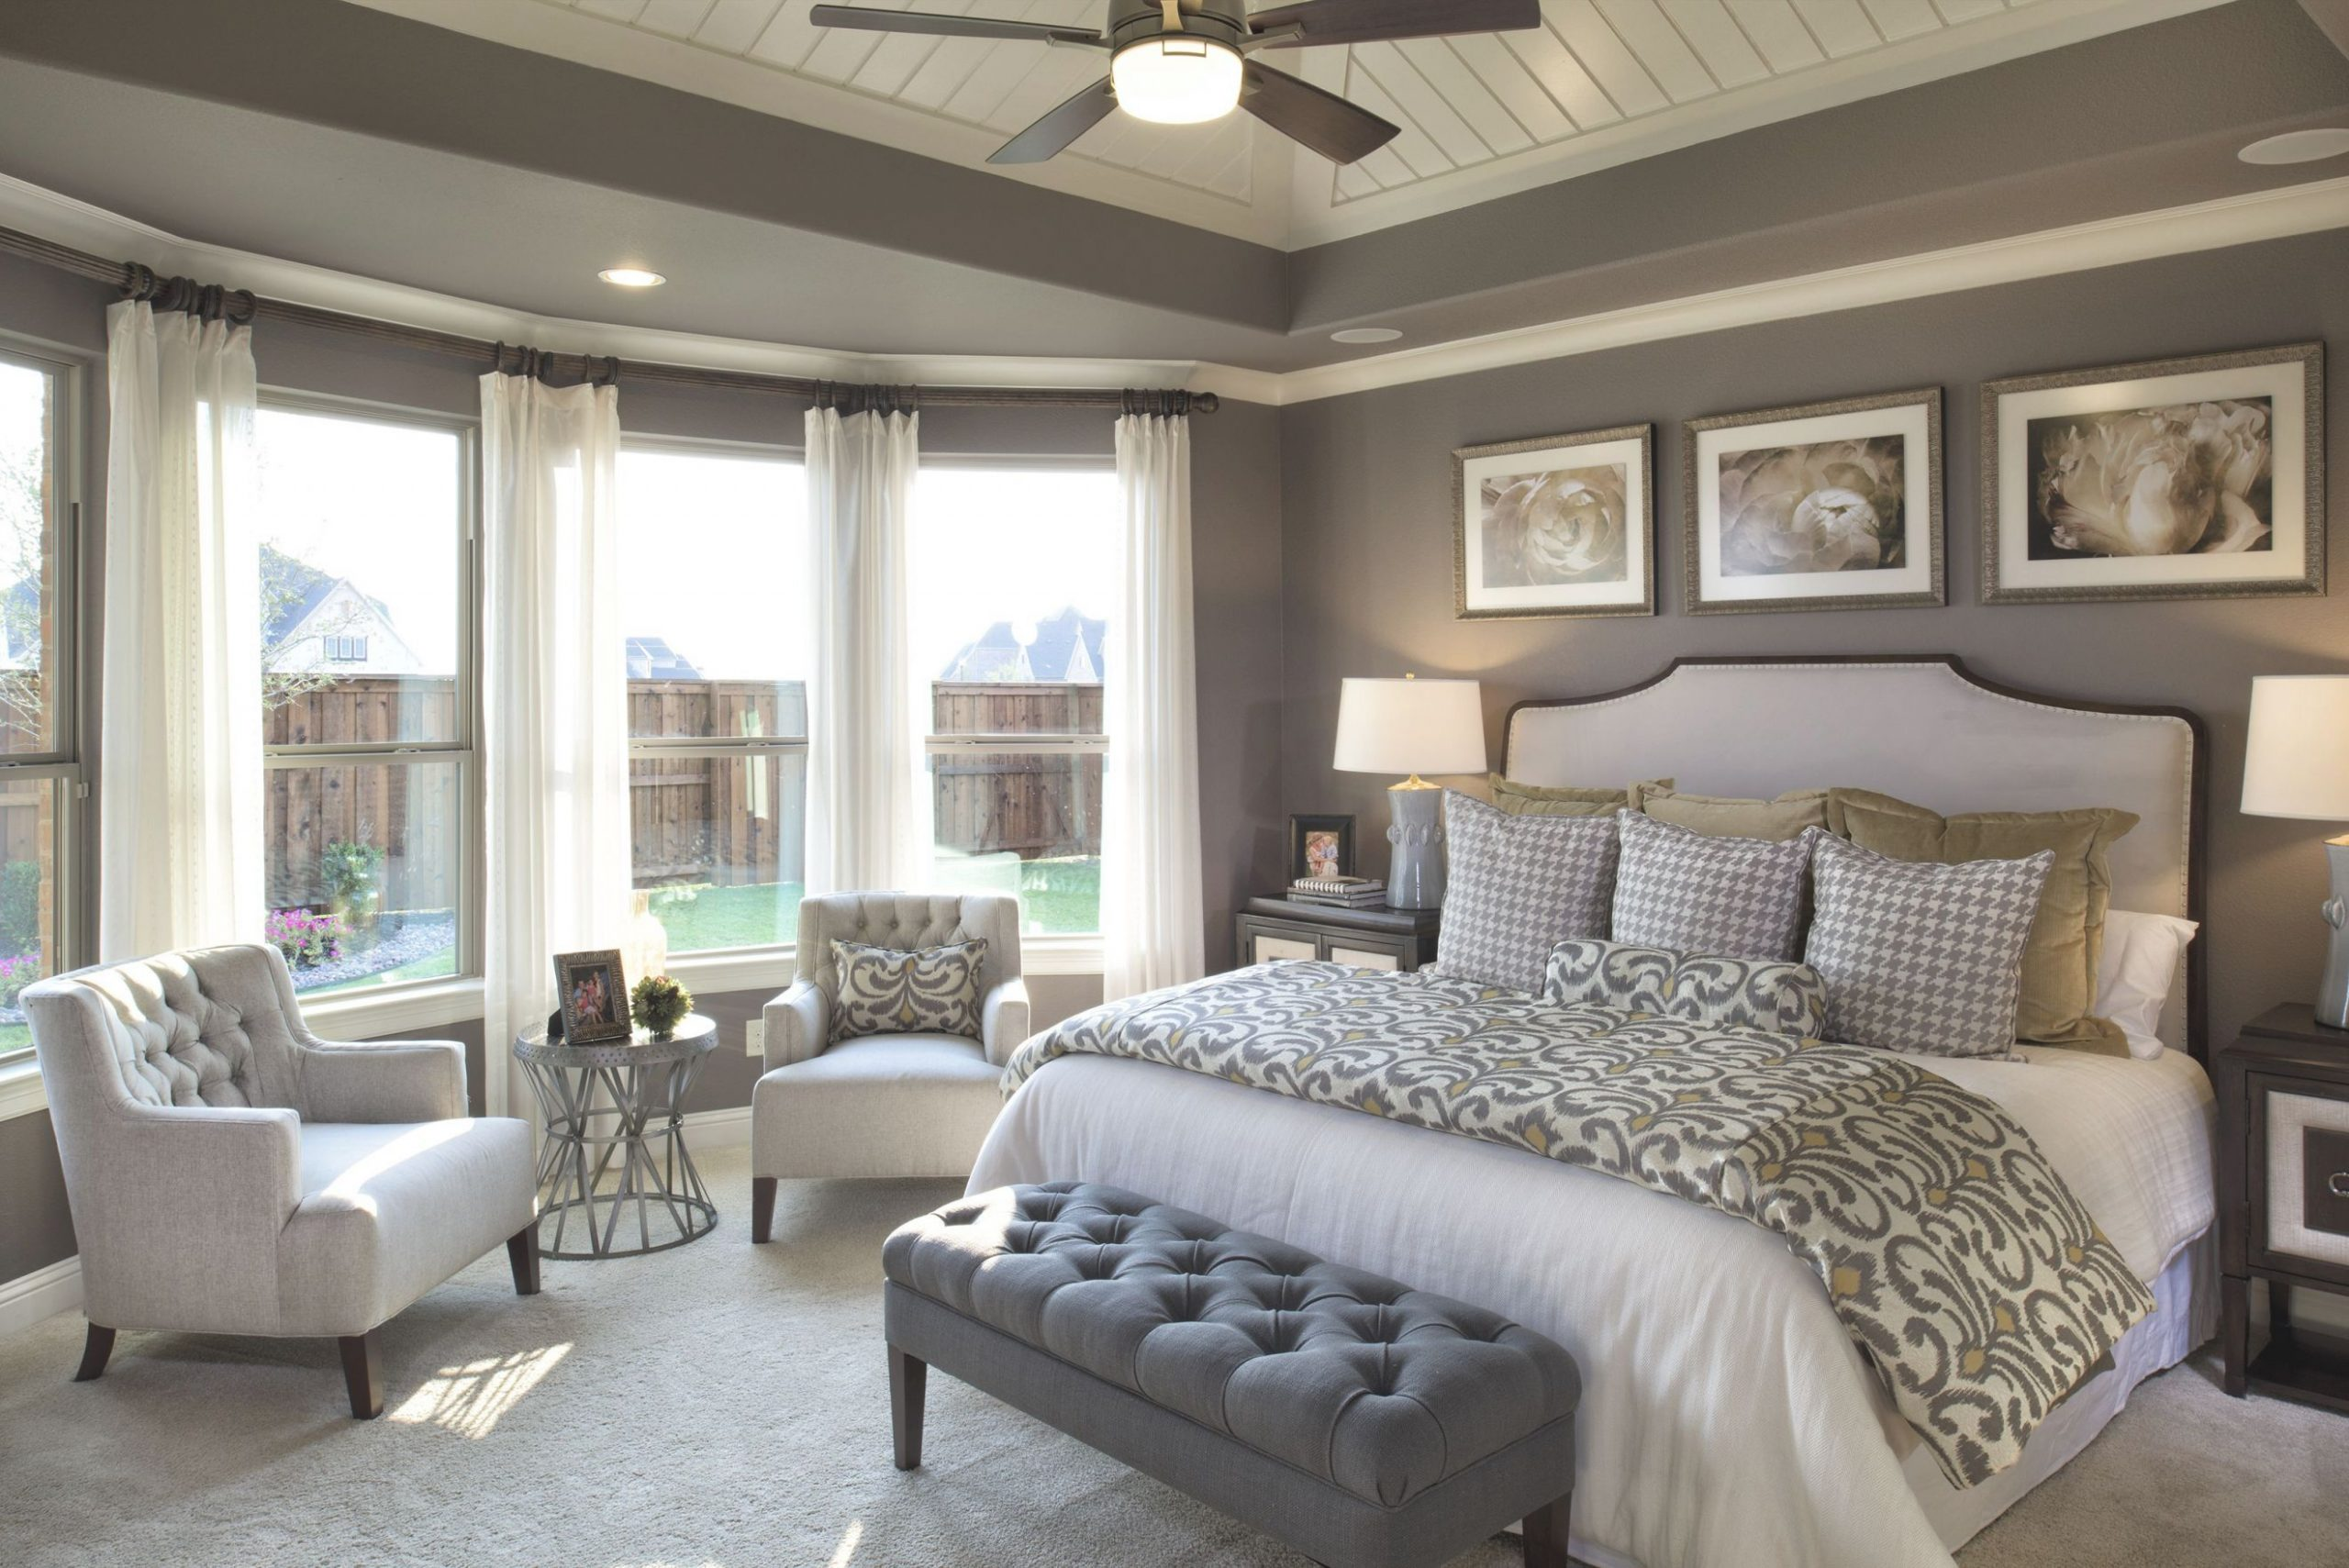 Pure Elegance! #master #bedroom | Luxurious Bedrooms, Home for Lovely Decorating Ideas Master Bedroom